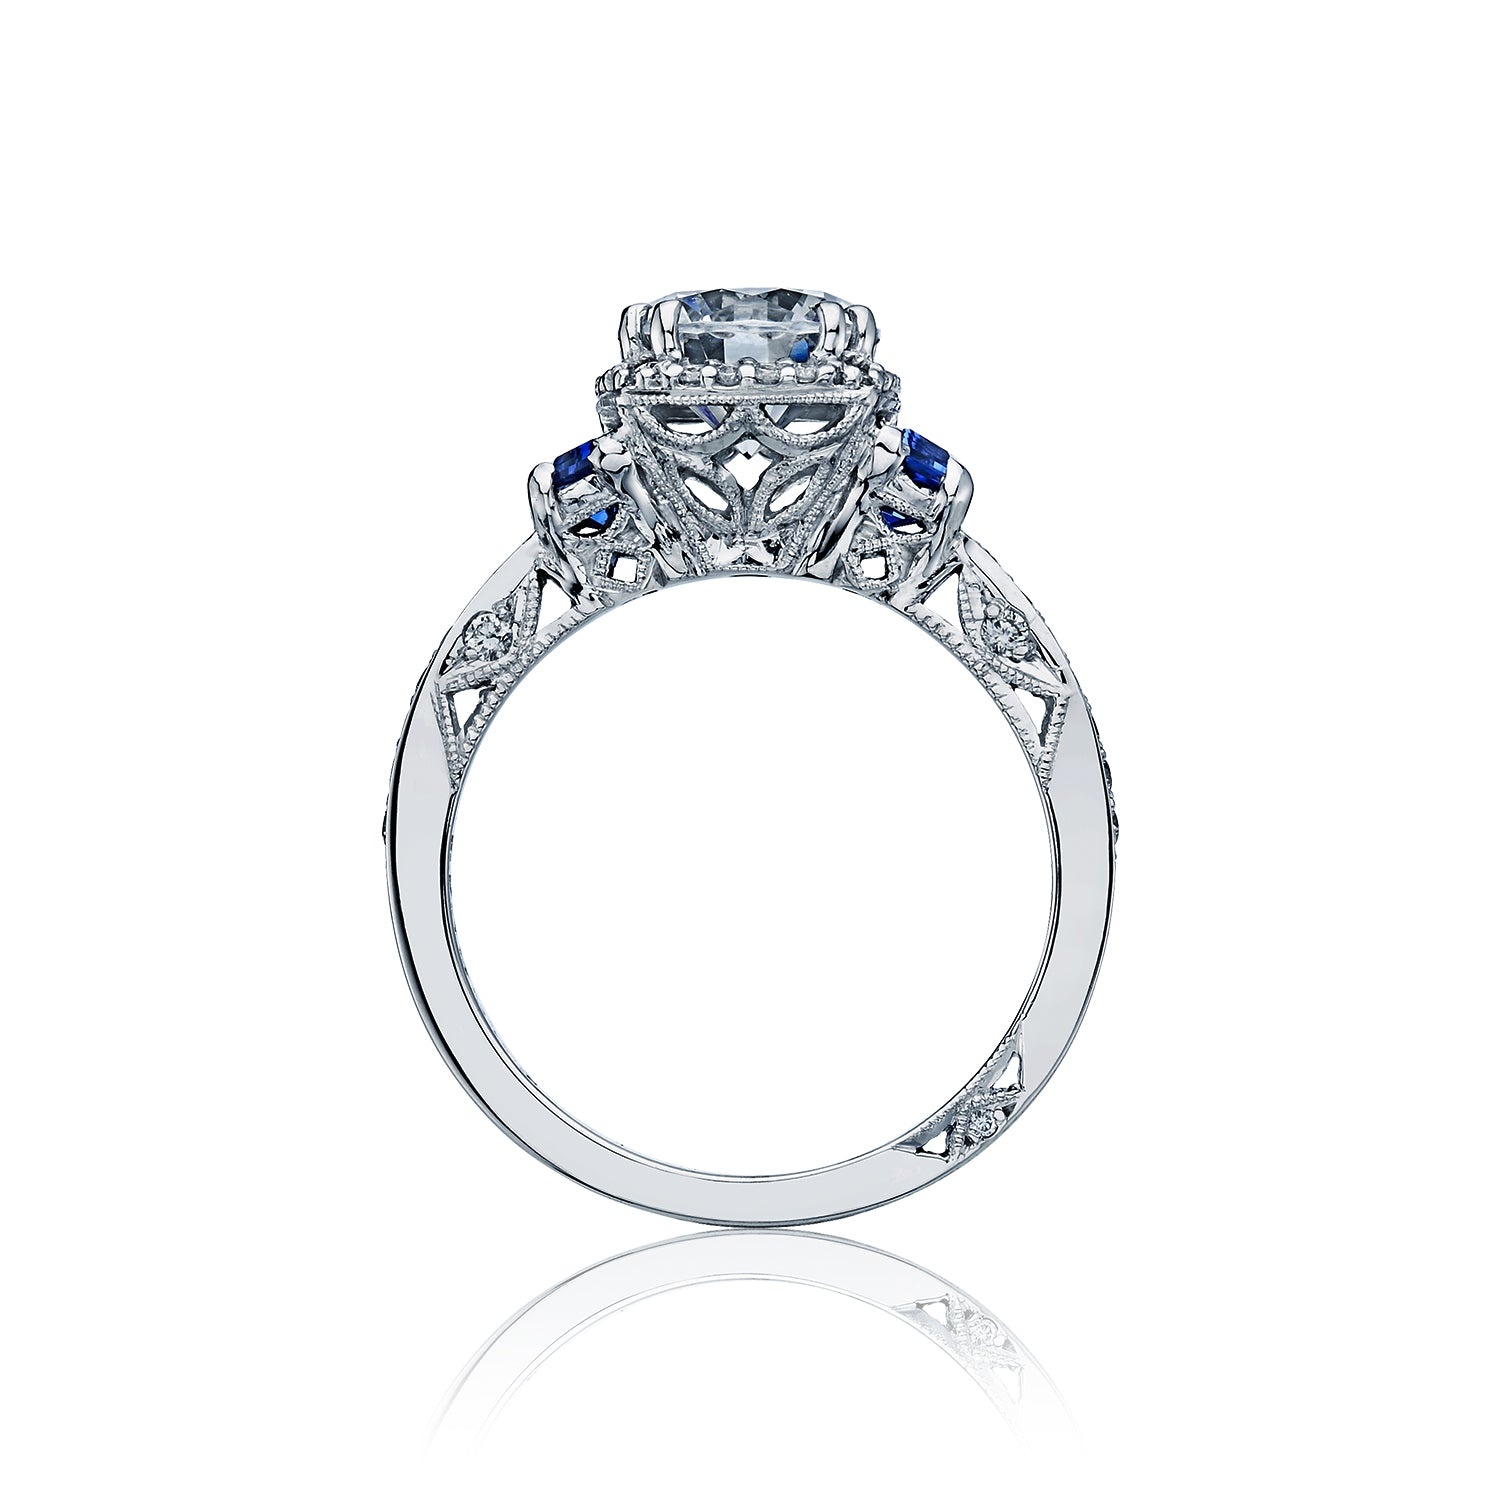 Tacori 'Dantela' 6.5mm Round Engagement Ring with Blue Sapphires